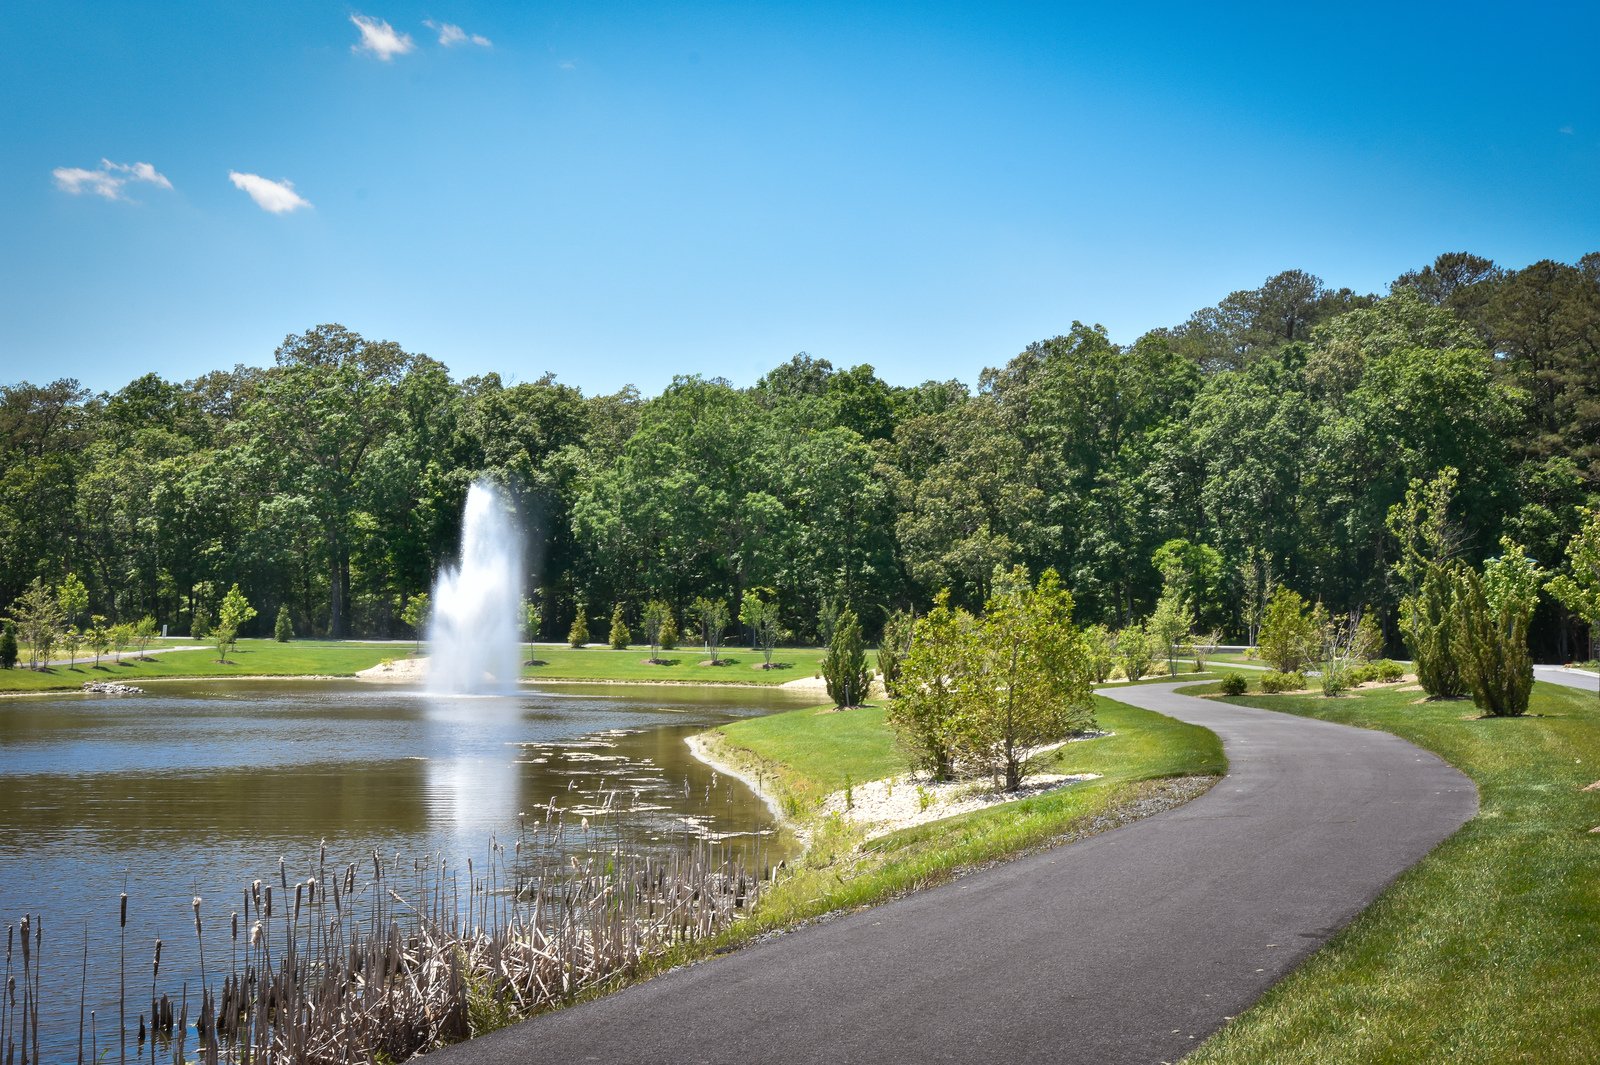 Take in the surrounding woodlands on walking and biking trails throughout the community